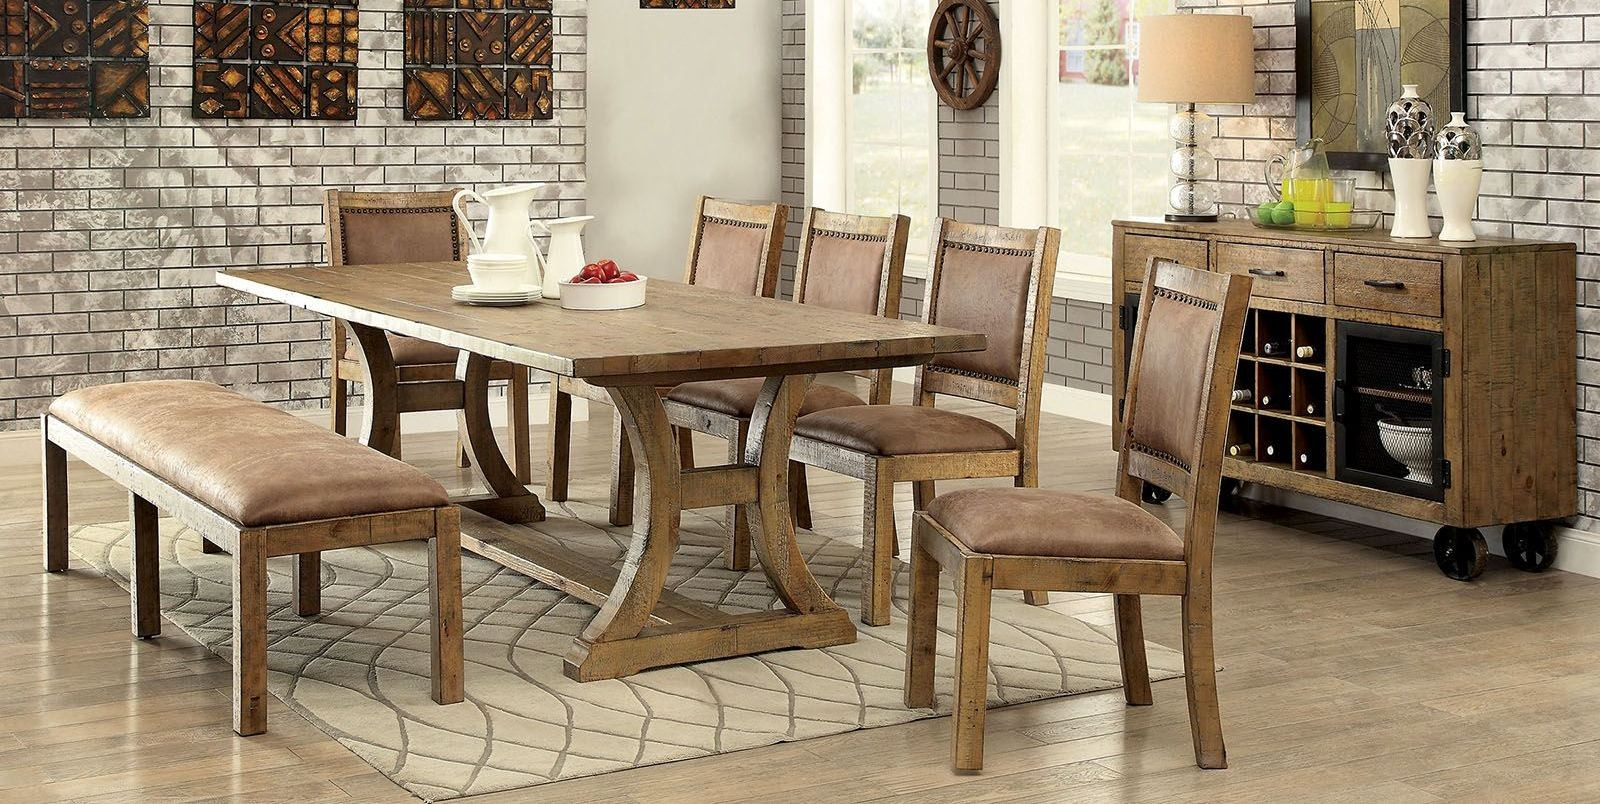 Gianna rustic pine extendable rectangular dining room set for Rustic dining room sets